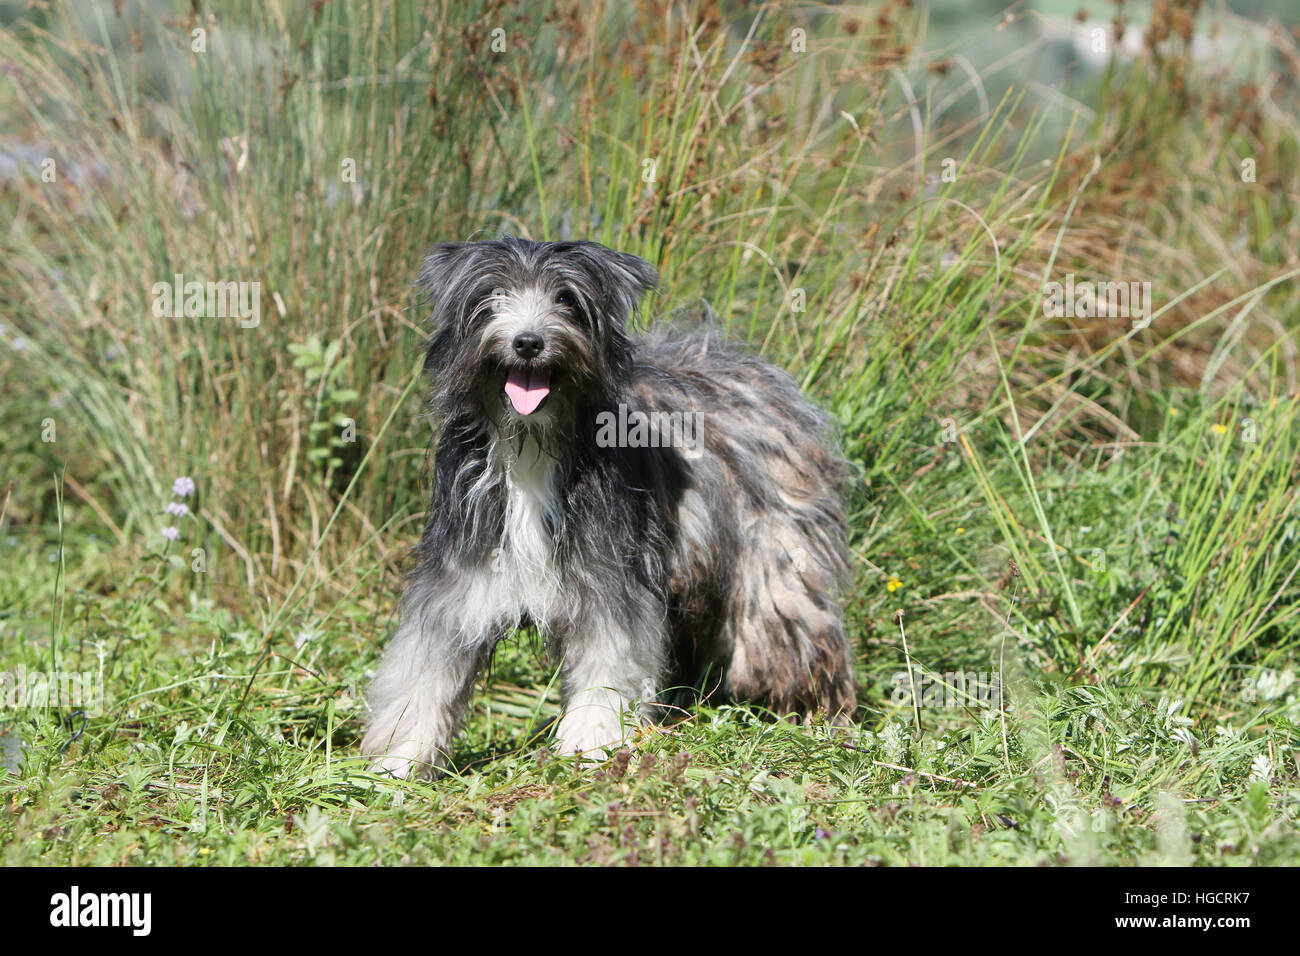 Dog Pyrenean Shepherd adult standing in a meadow beach blue merle Stock Photo